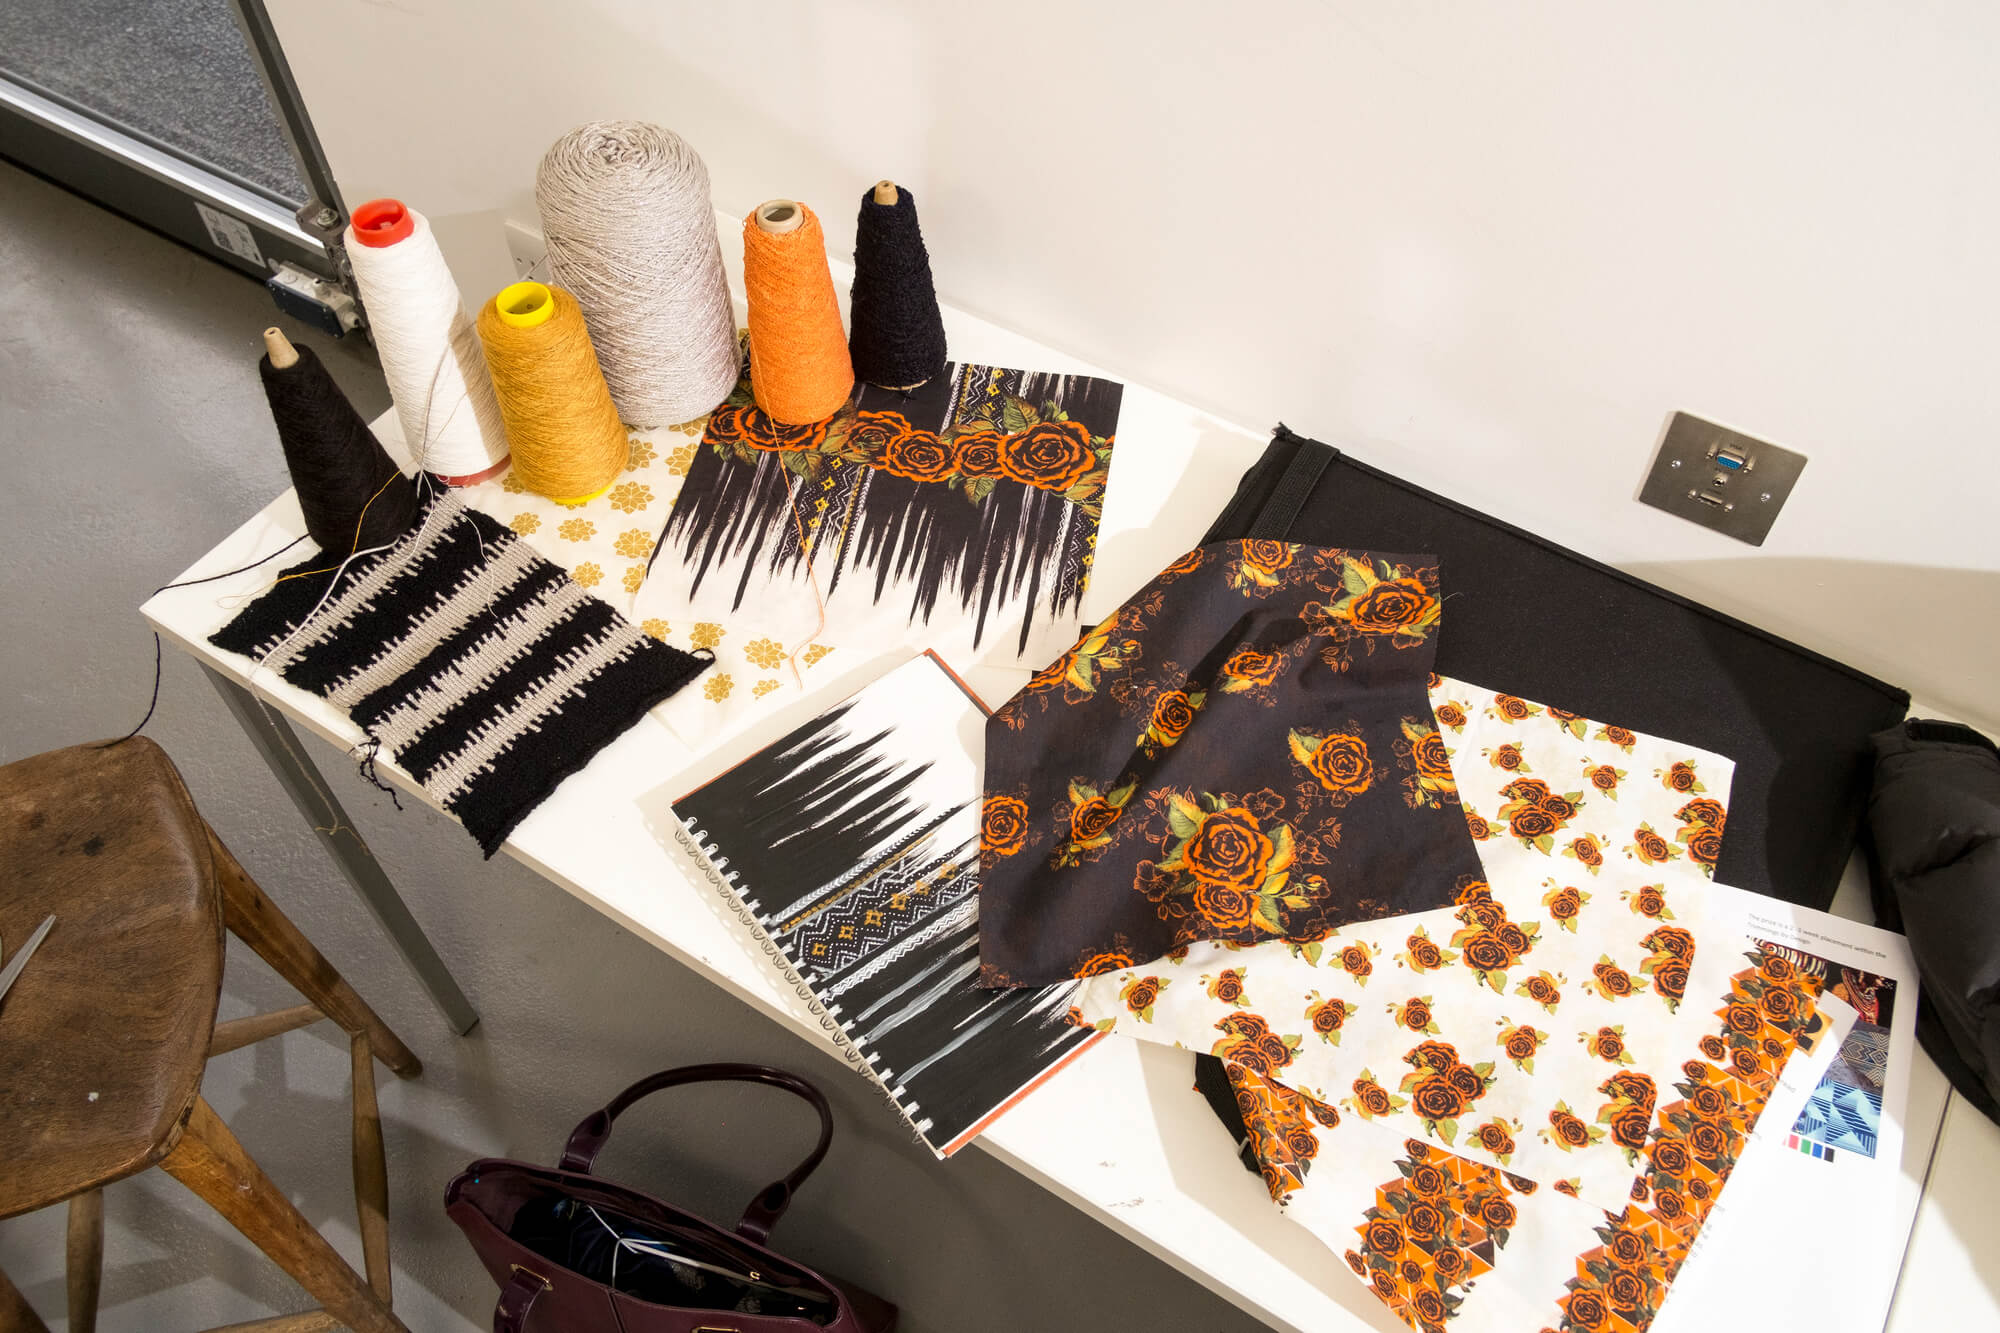 A collection of black, orange and white floral patterned textile samples and yarn on a table